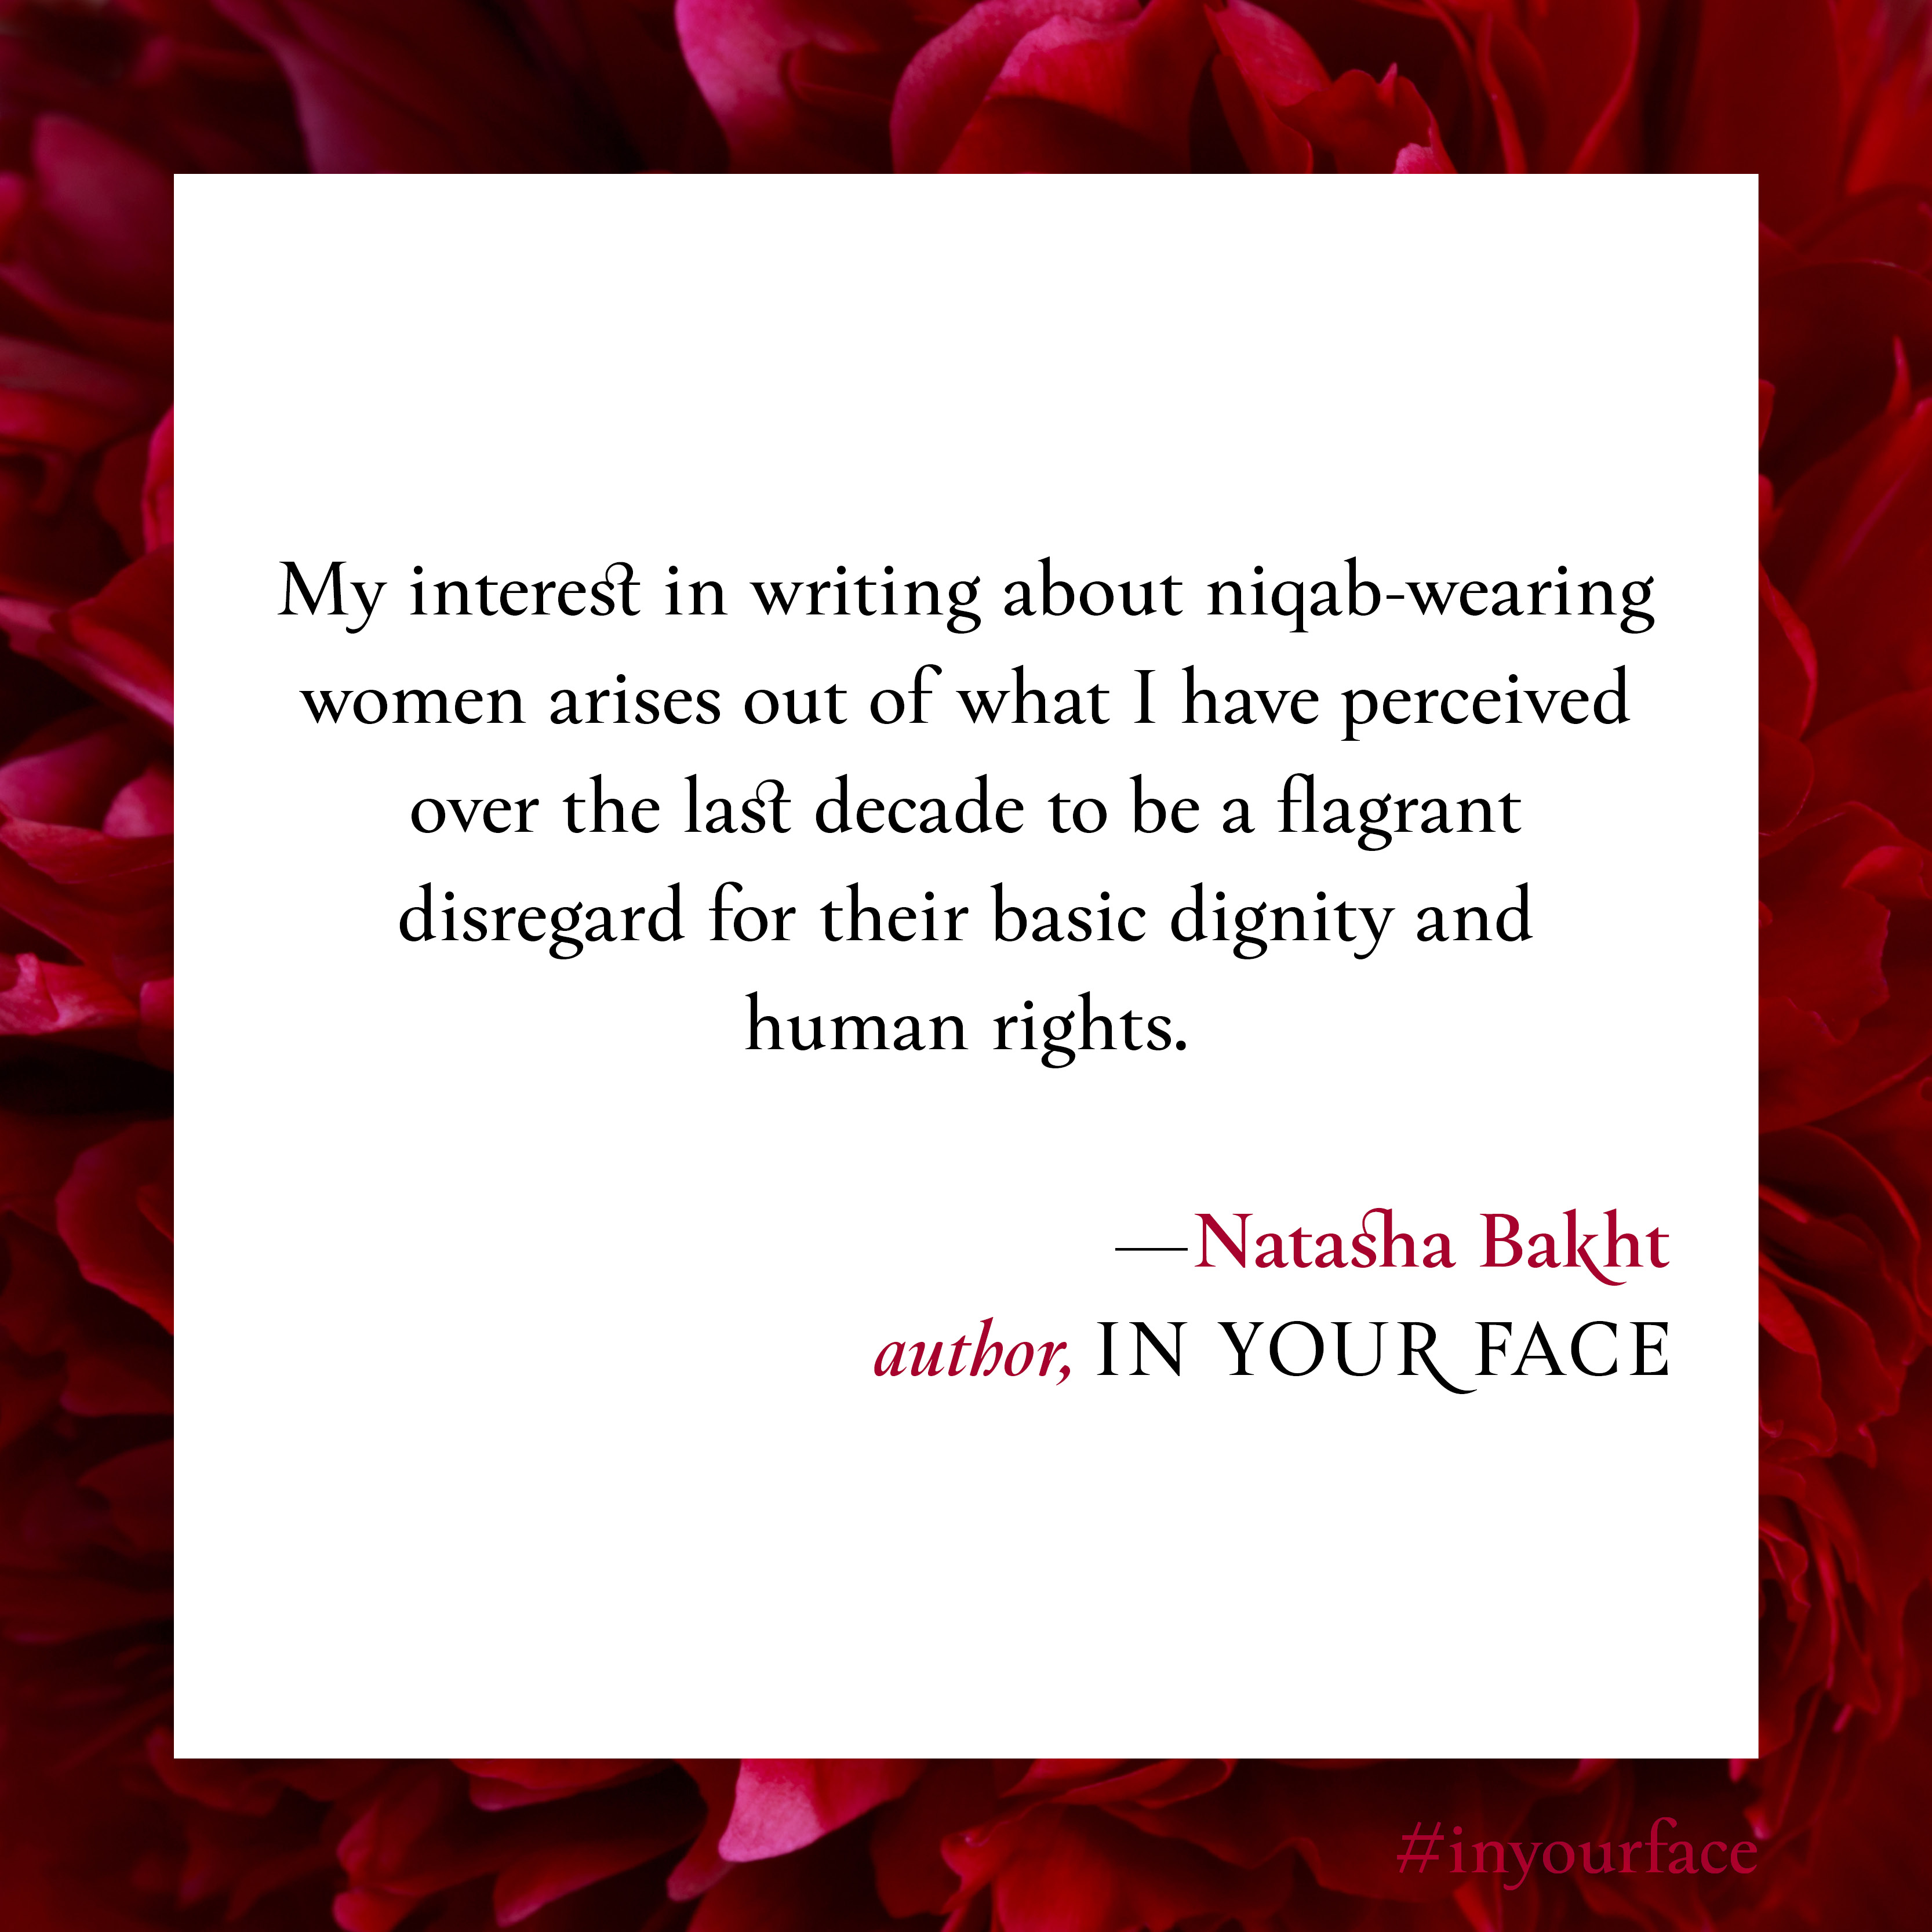 """Excerpt from In Your Face by Natasha Bakht. It reads: """"My interest in writing about niqab-wearing women arises out of what I have perceived over the last decade to be a flagrant disregard for their basic dignity and human rights. """""""